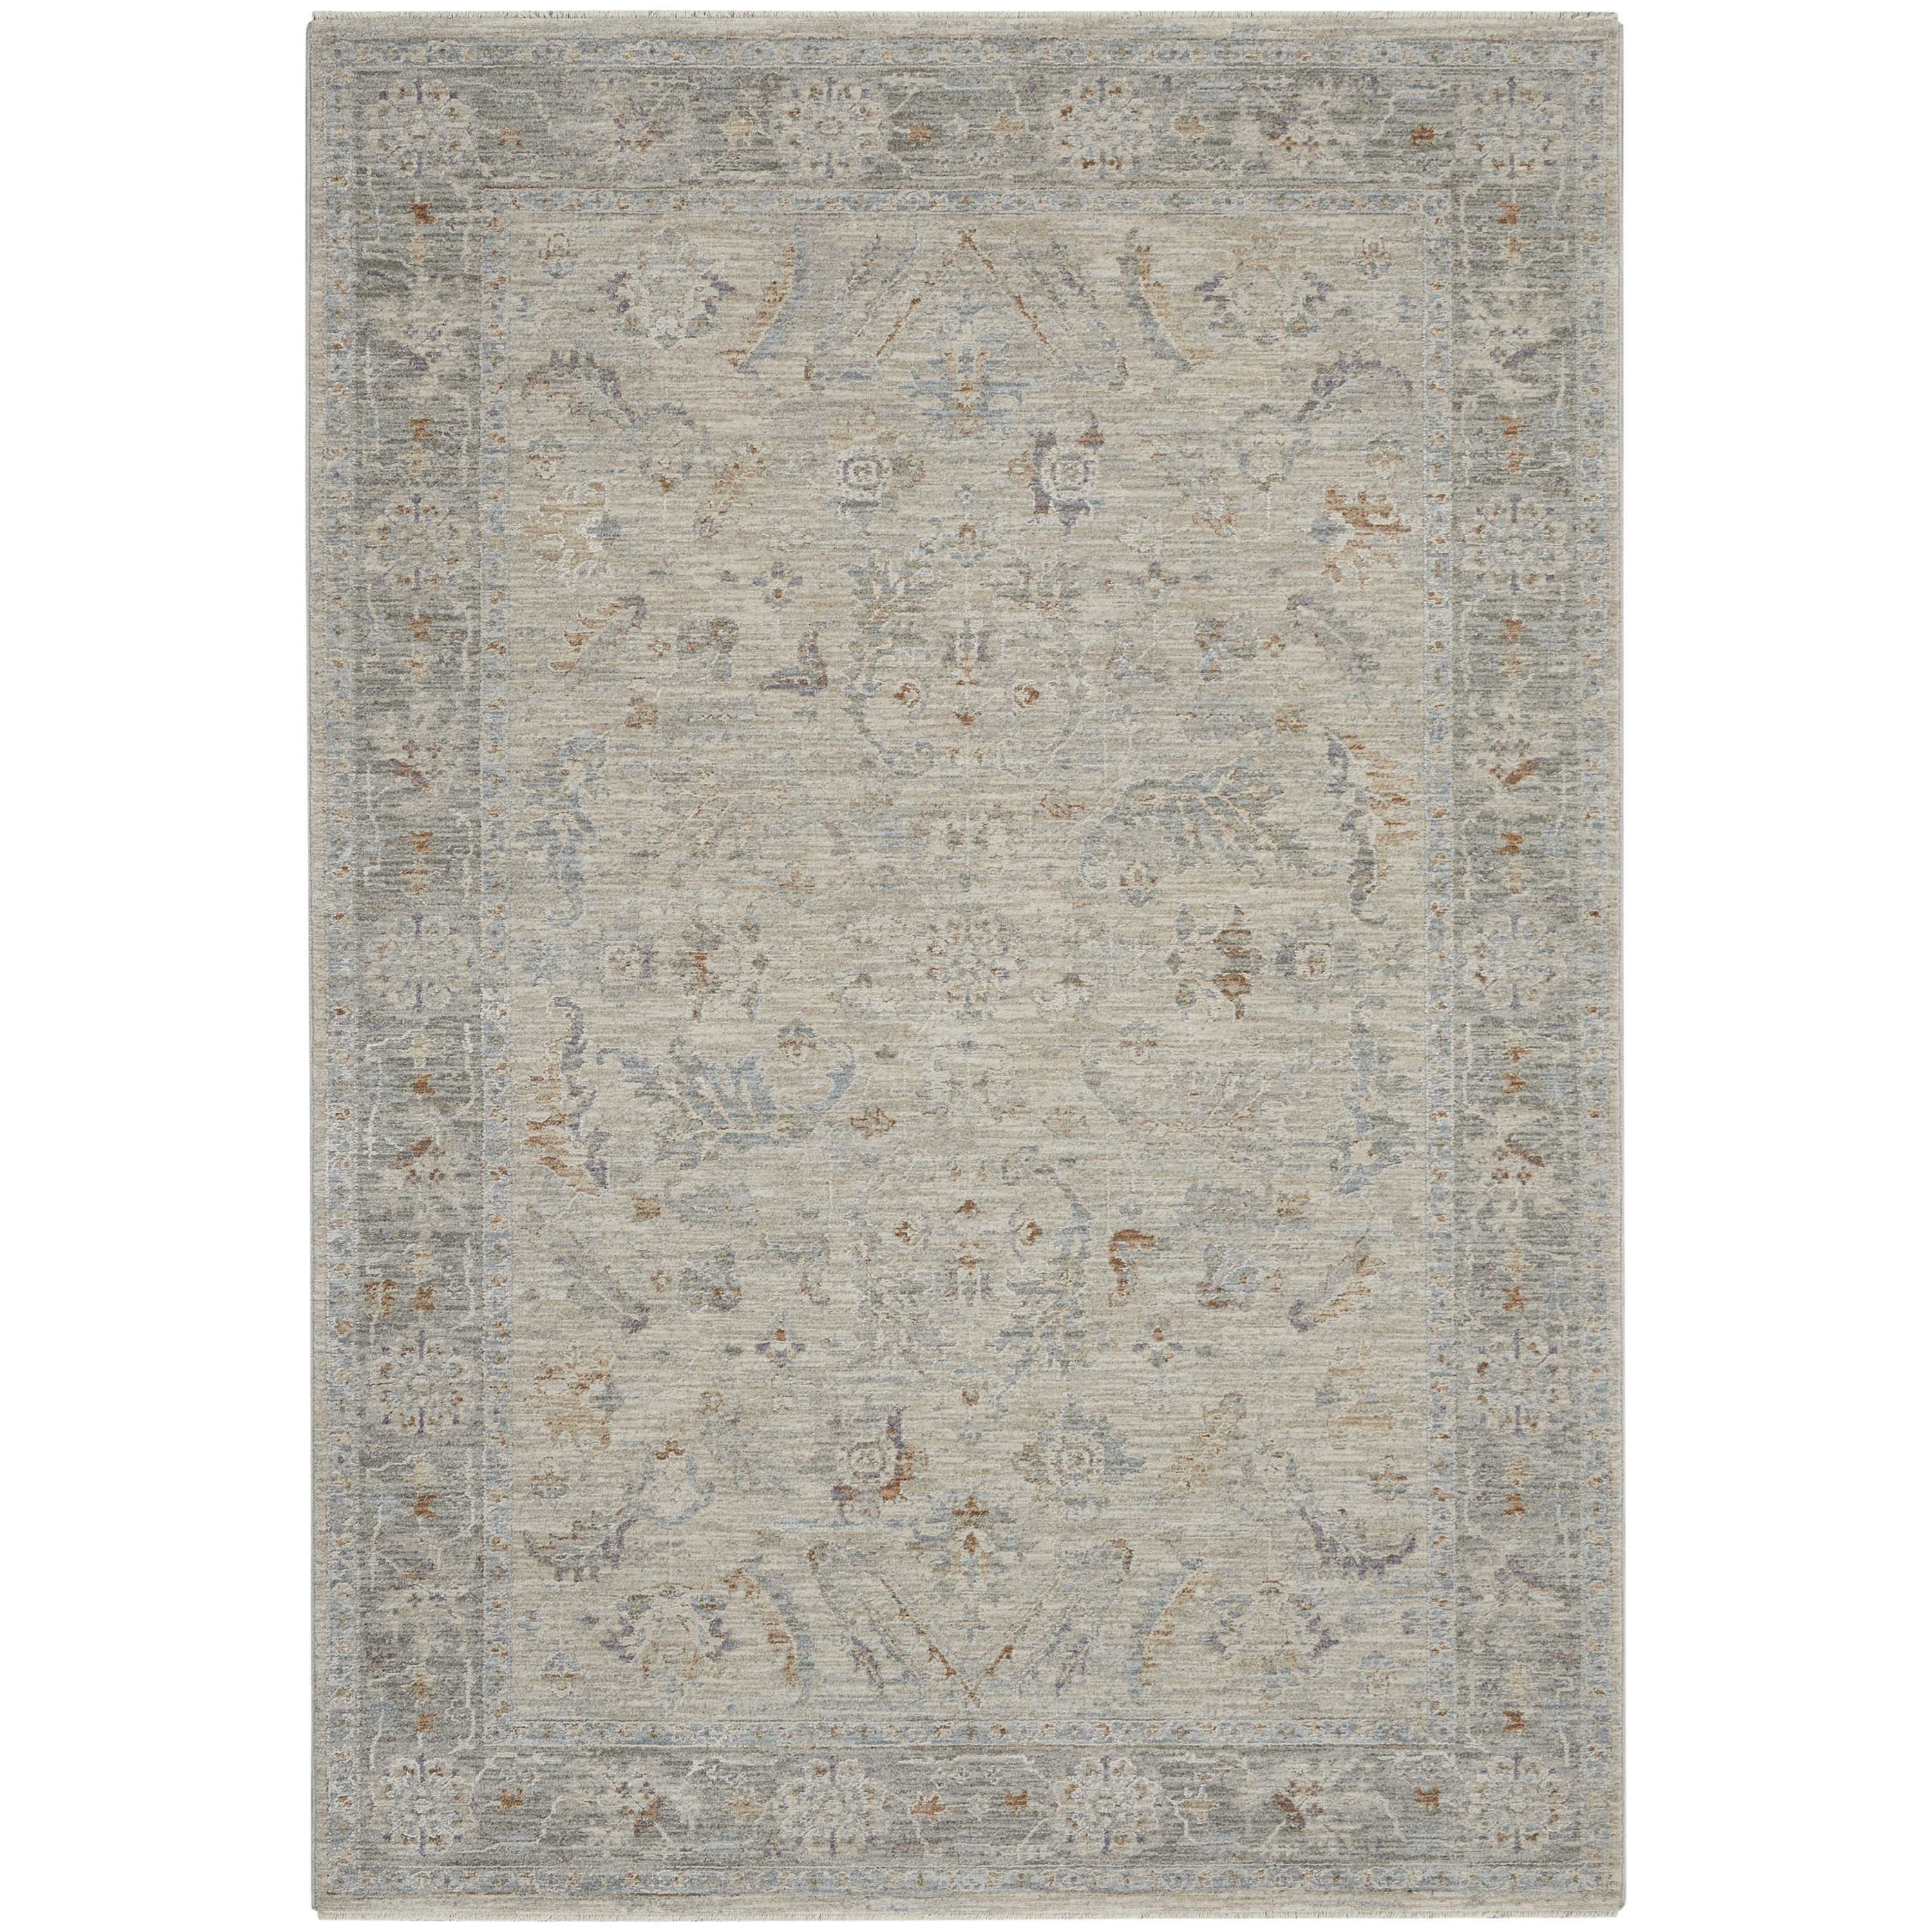 Infinite 2020 5' X 8' Rug by Nourison at Home Collections Furniture